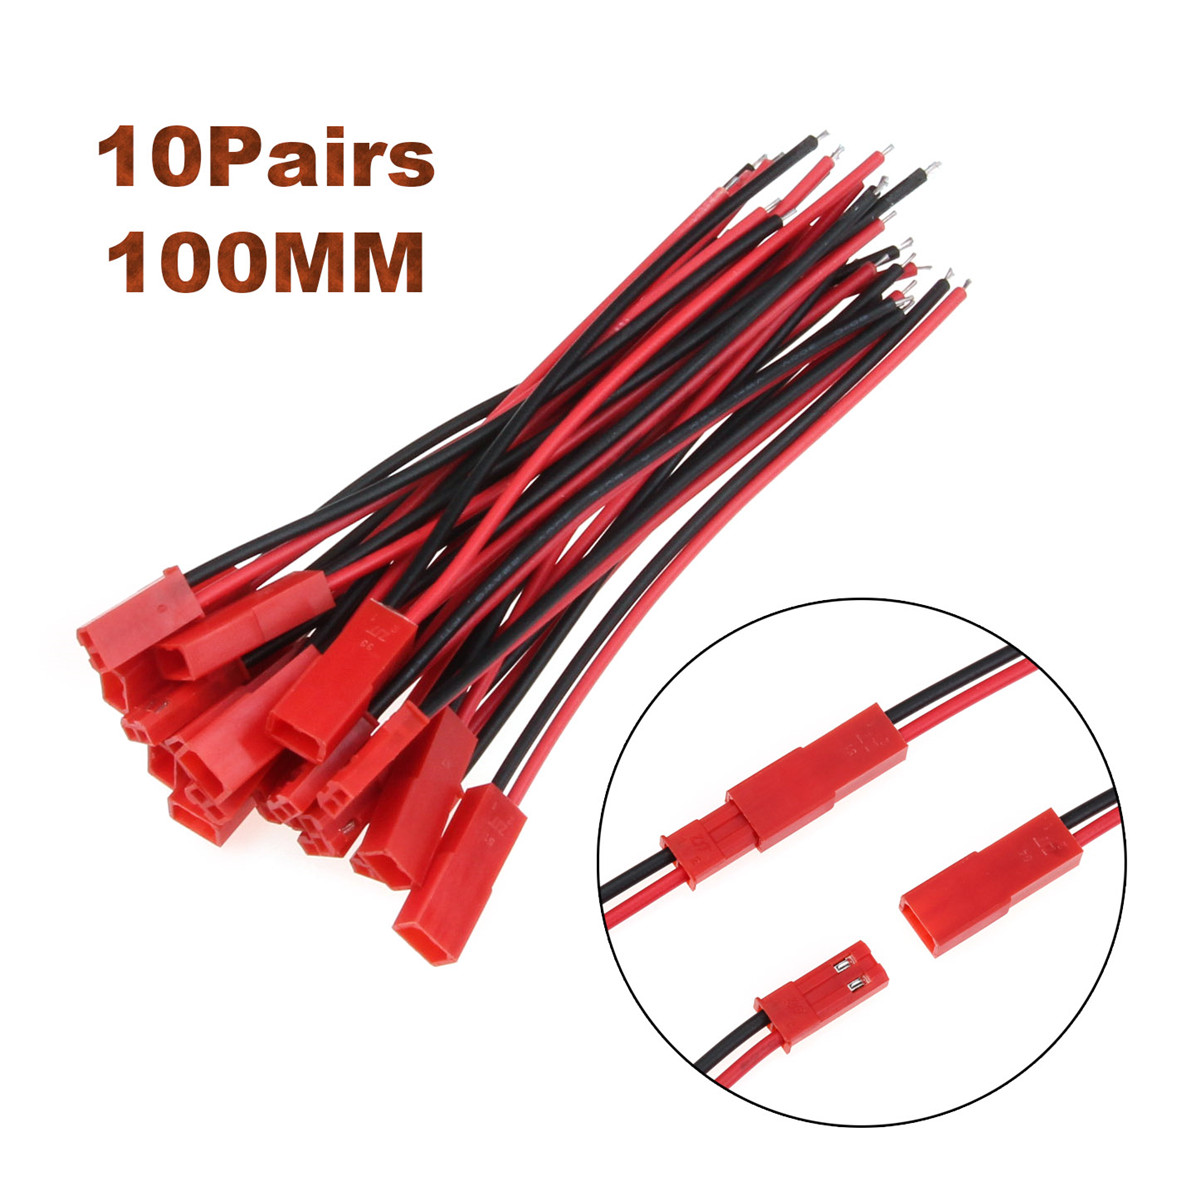 20-piece 2-pin battery connector plug Micro JST 1.25 socket to JST PH 2.0 plug for RC battery charging card